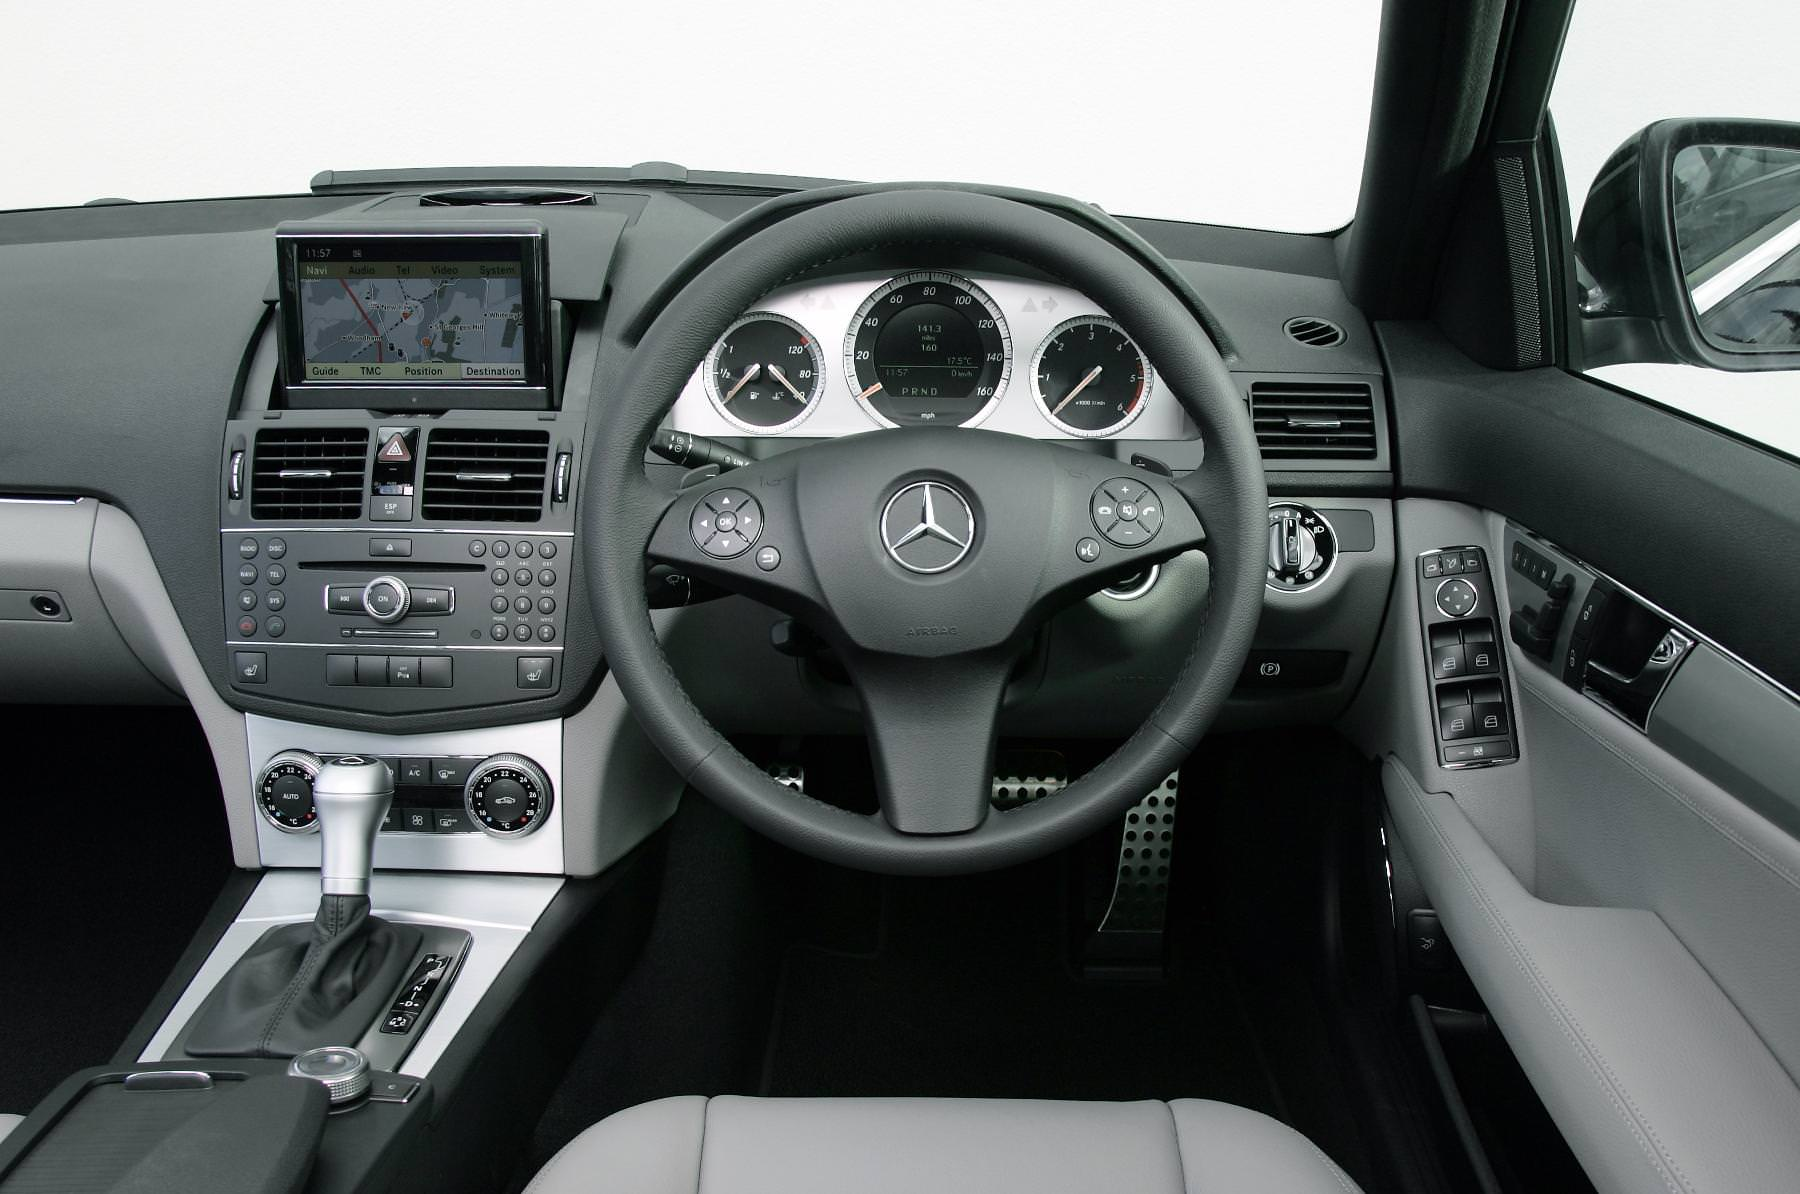 Mercedes C class interior design